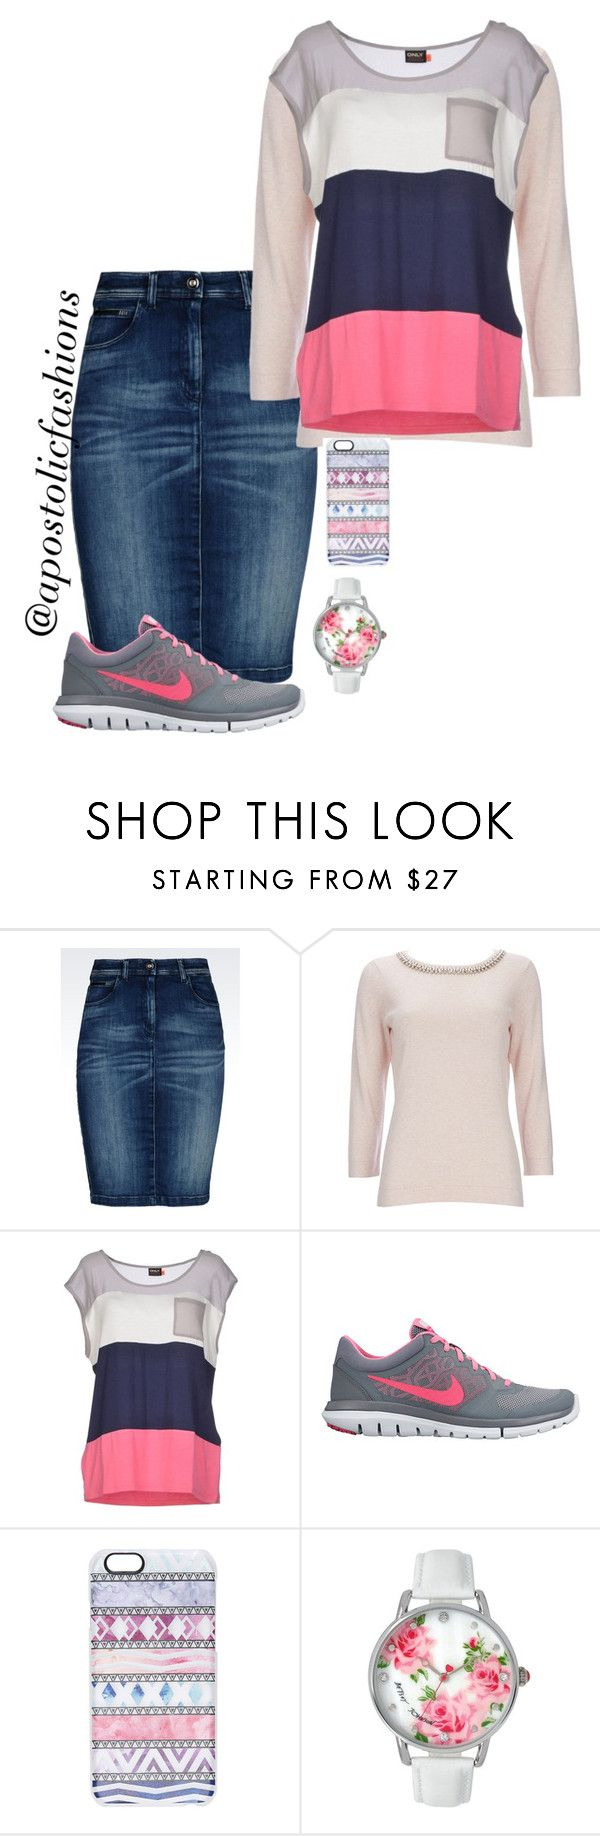 """""""Apostolic Fashions #1106"""" by apostolicfashions on Polyvore featuring Armani Jeans, Wallis, ONLY, NIKE, Casetify, Betsey Johnson, women's clothing, women, female and woman"""